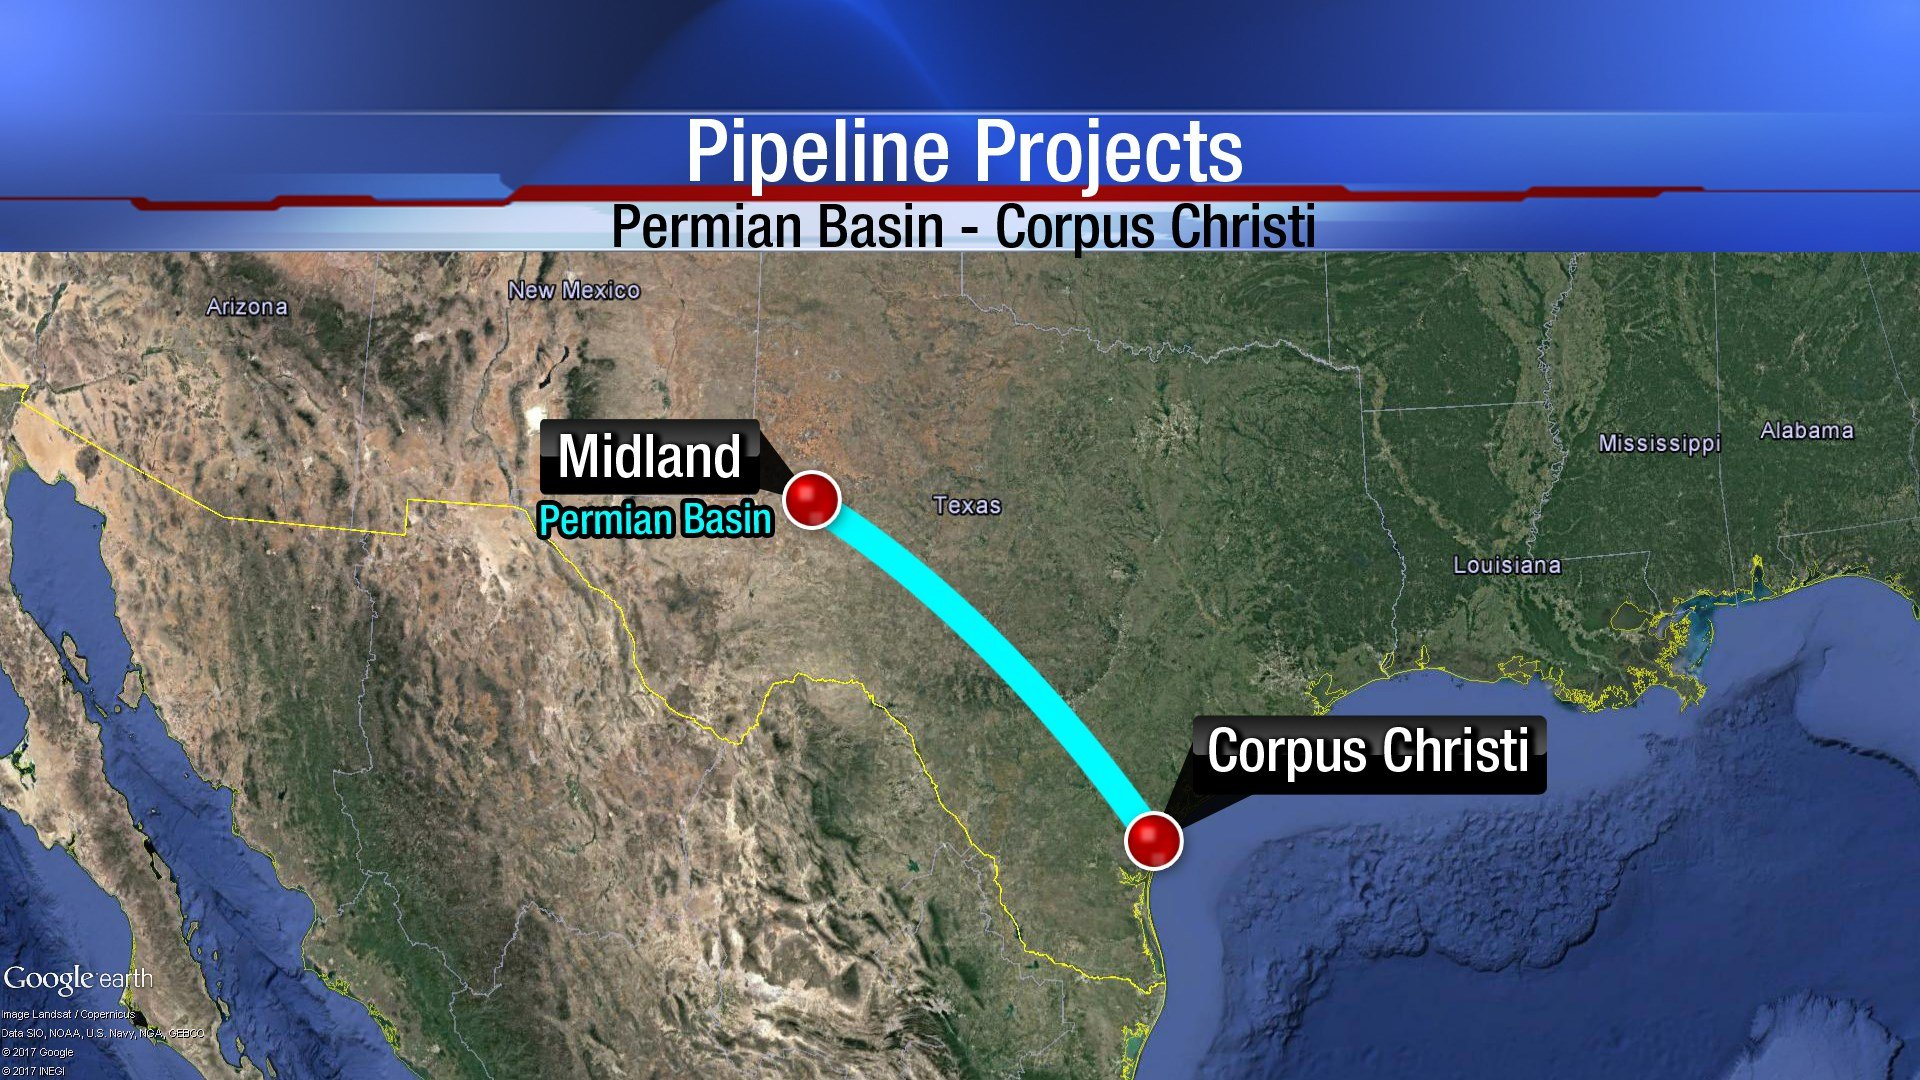 There are a dozen proposals for pipeline projects that would bring production from the Permian Basin to Corpus Christi's Eagle Ford Shale regions.